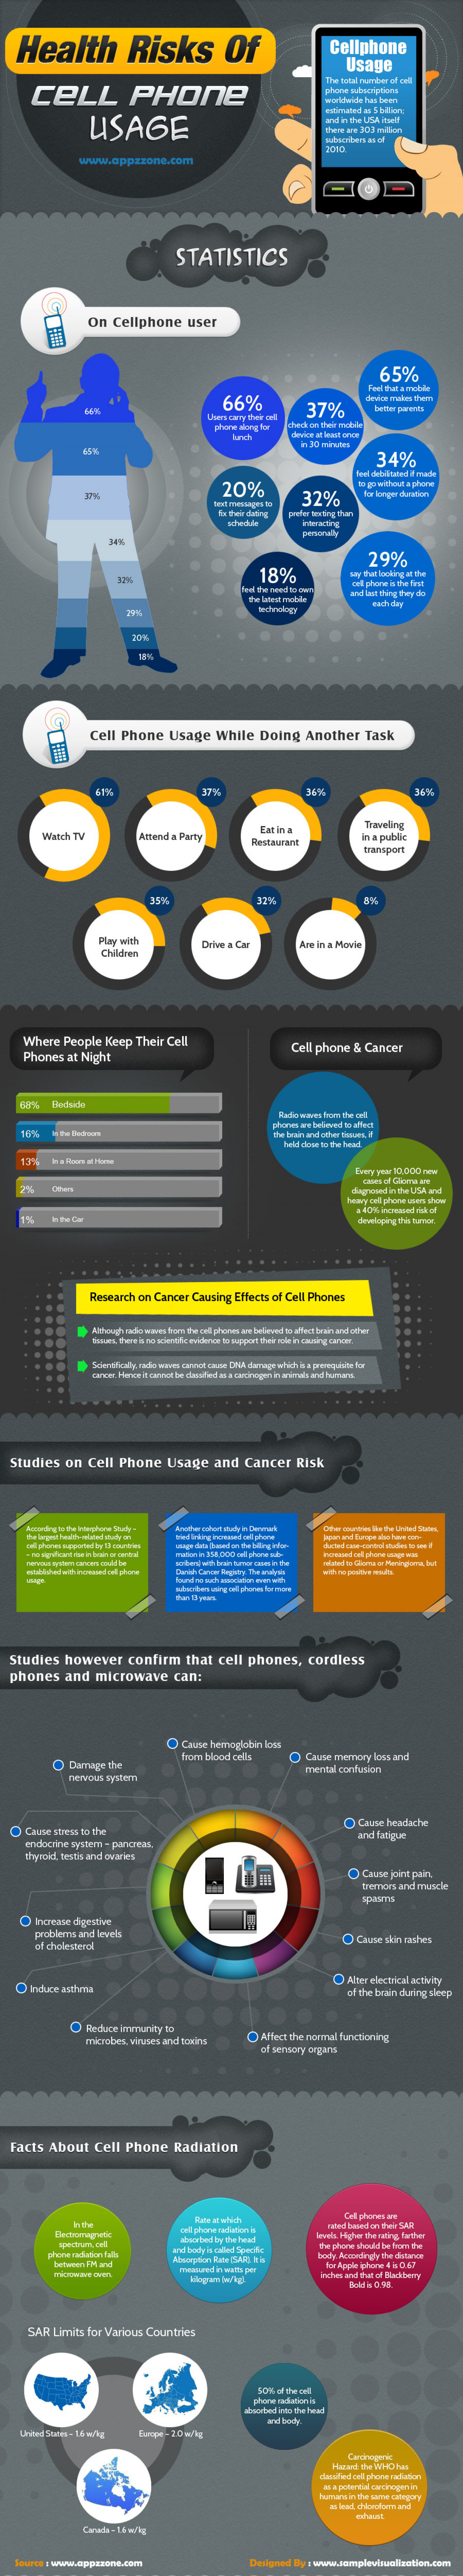 Health Risks Of Cell Phone Usage Infographic